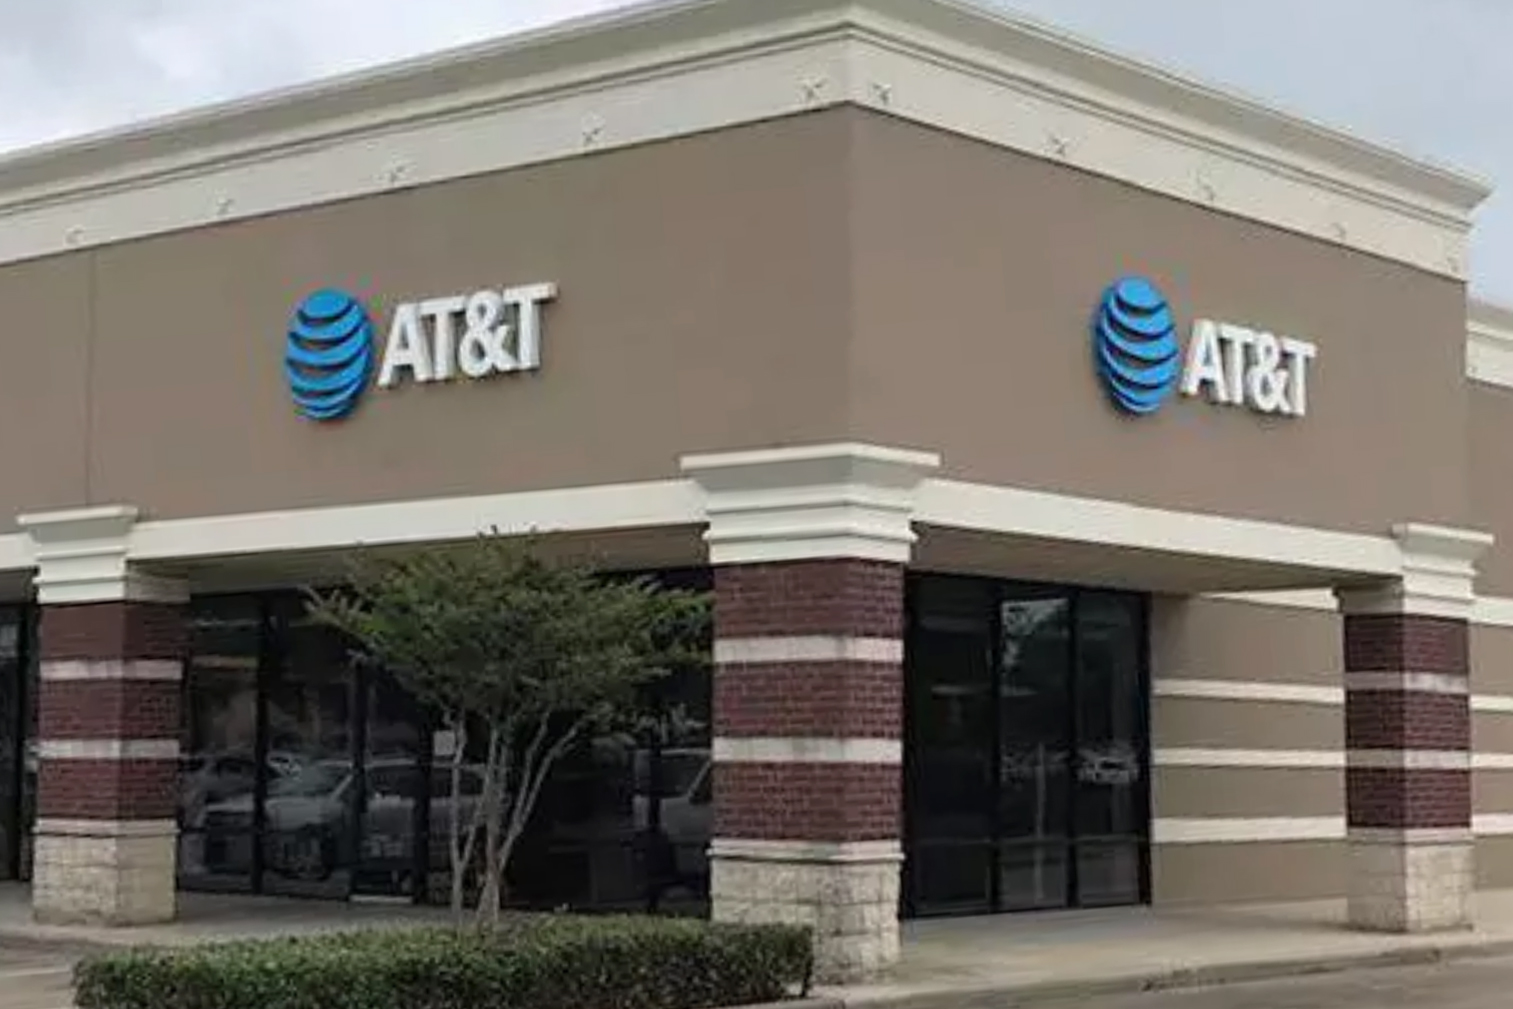 The wireless carrier's marketing has long drawn ire from rivals who say AT&T's '5G Evolution' advertising will mislead consumers, which in turn may prevent them from upgrading their phones.